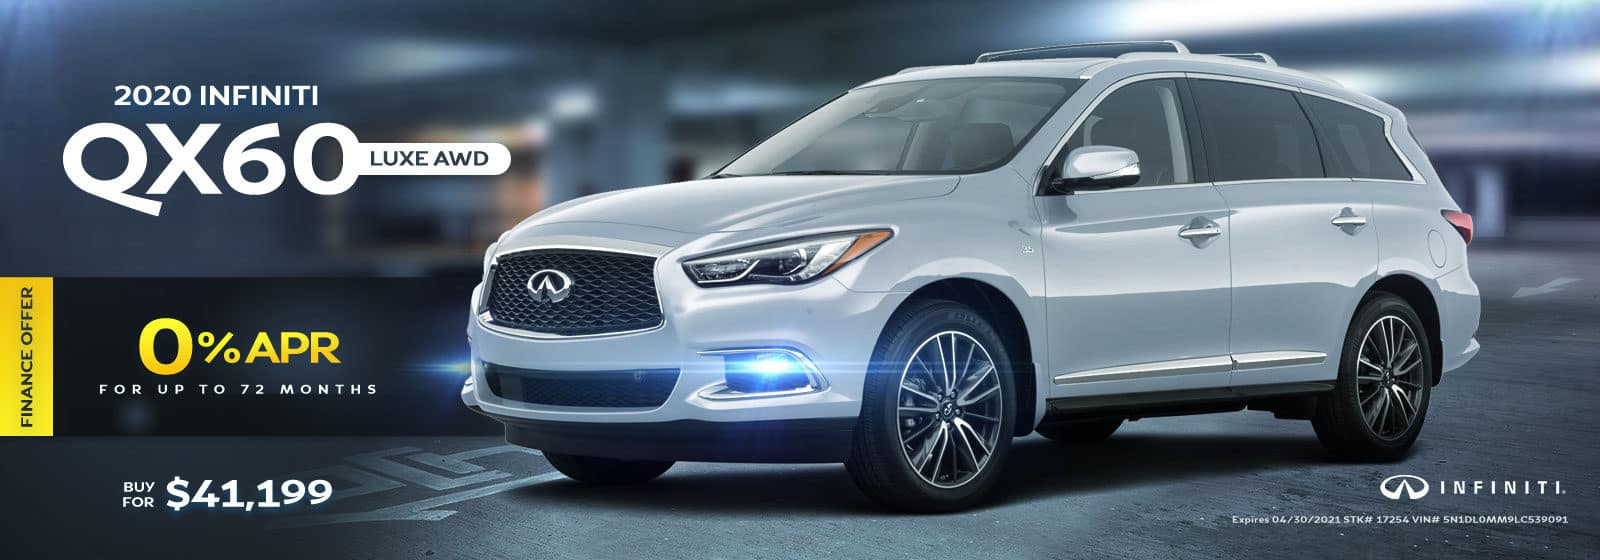 2020 QX60 Luxe AWD April 2021 Offers